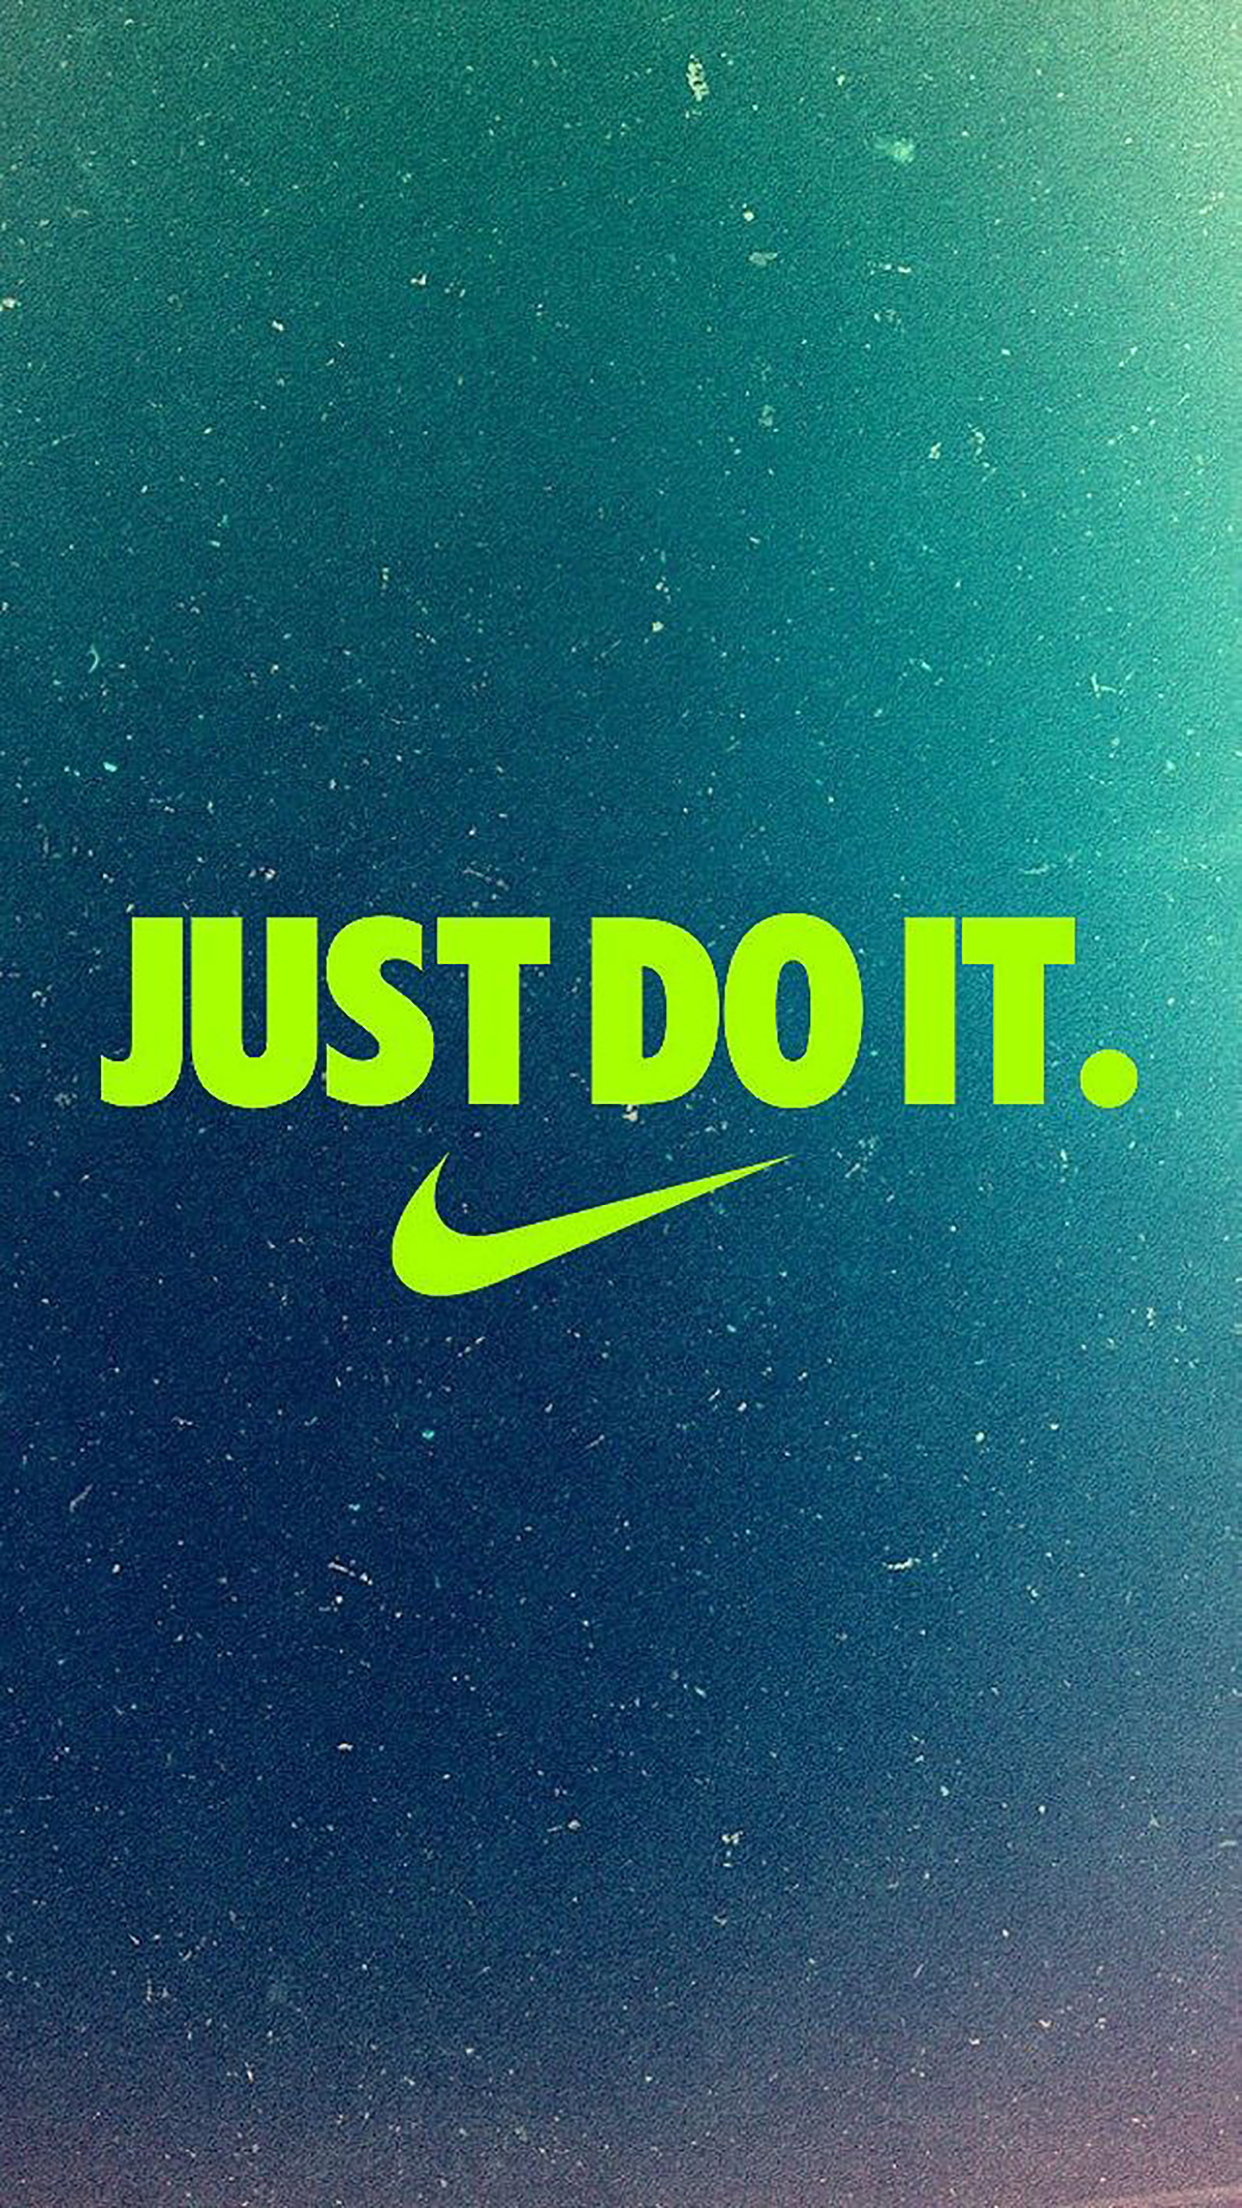 Nike Just Do It 2 3Wallpapers iPhone Parallax Nike : Just Do It 2